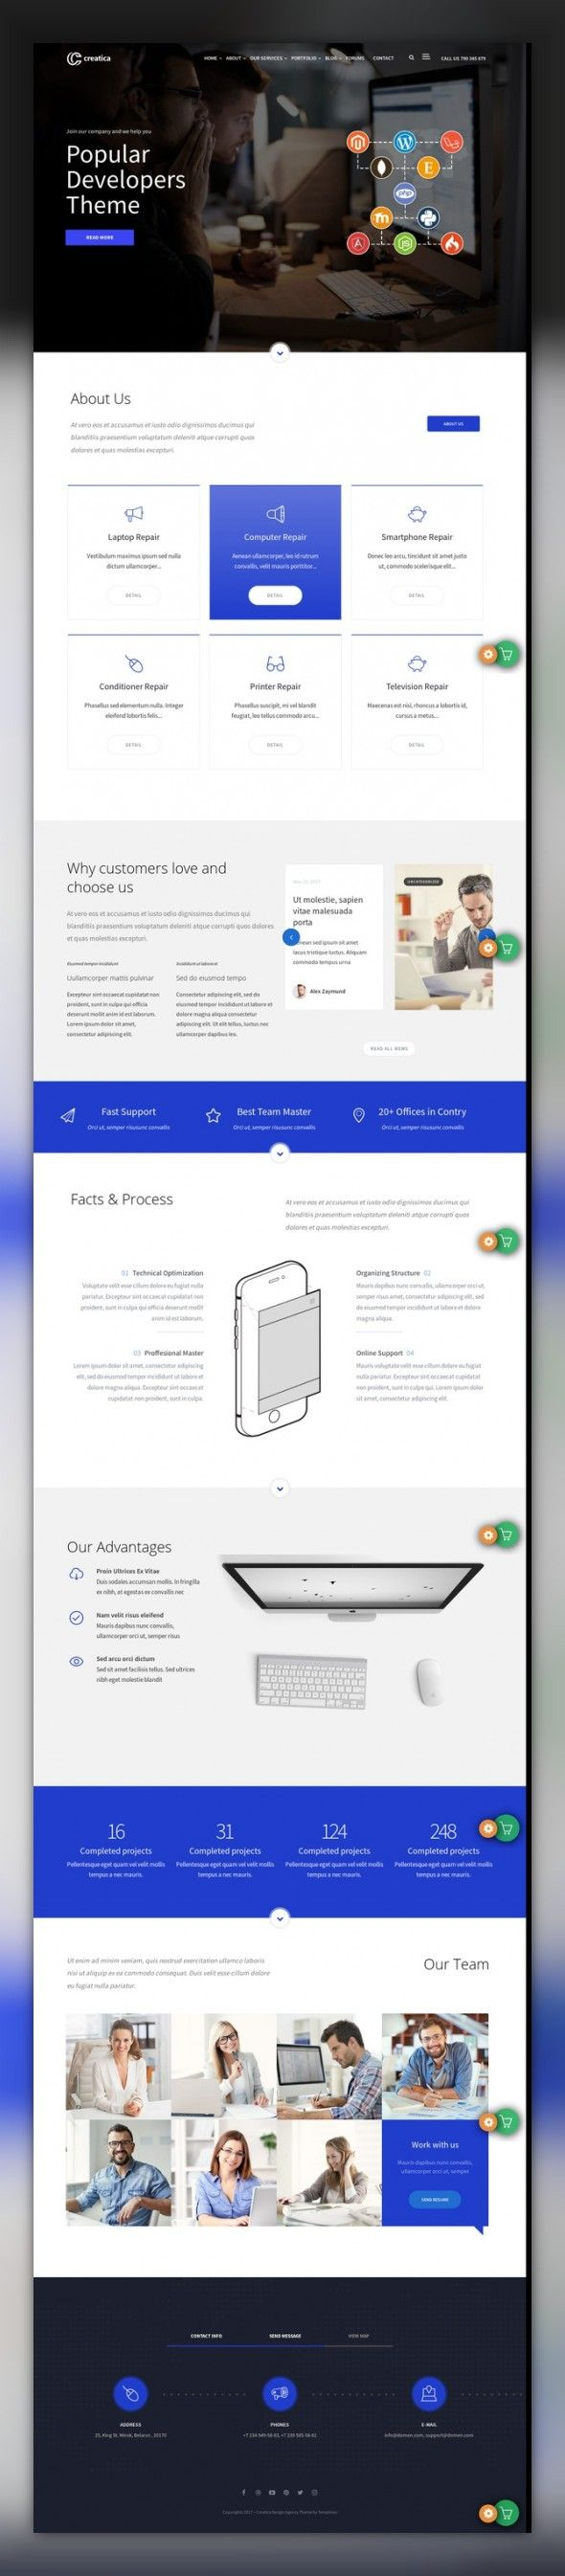 Creatica - Multipurpose WordPress Theme CMS & Blog Templates, WordPress Themes, Design & Photography, Photography Templates, Photographer Portfolio Templates Descriptions:Creatica – the multipurpose WordPress template. You can use it for advertizing agencies, analysts, marketing, portfolio and many other things. The templat...